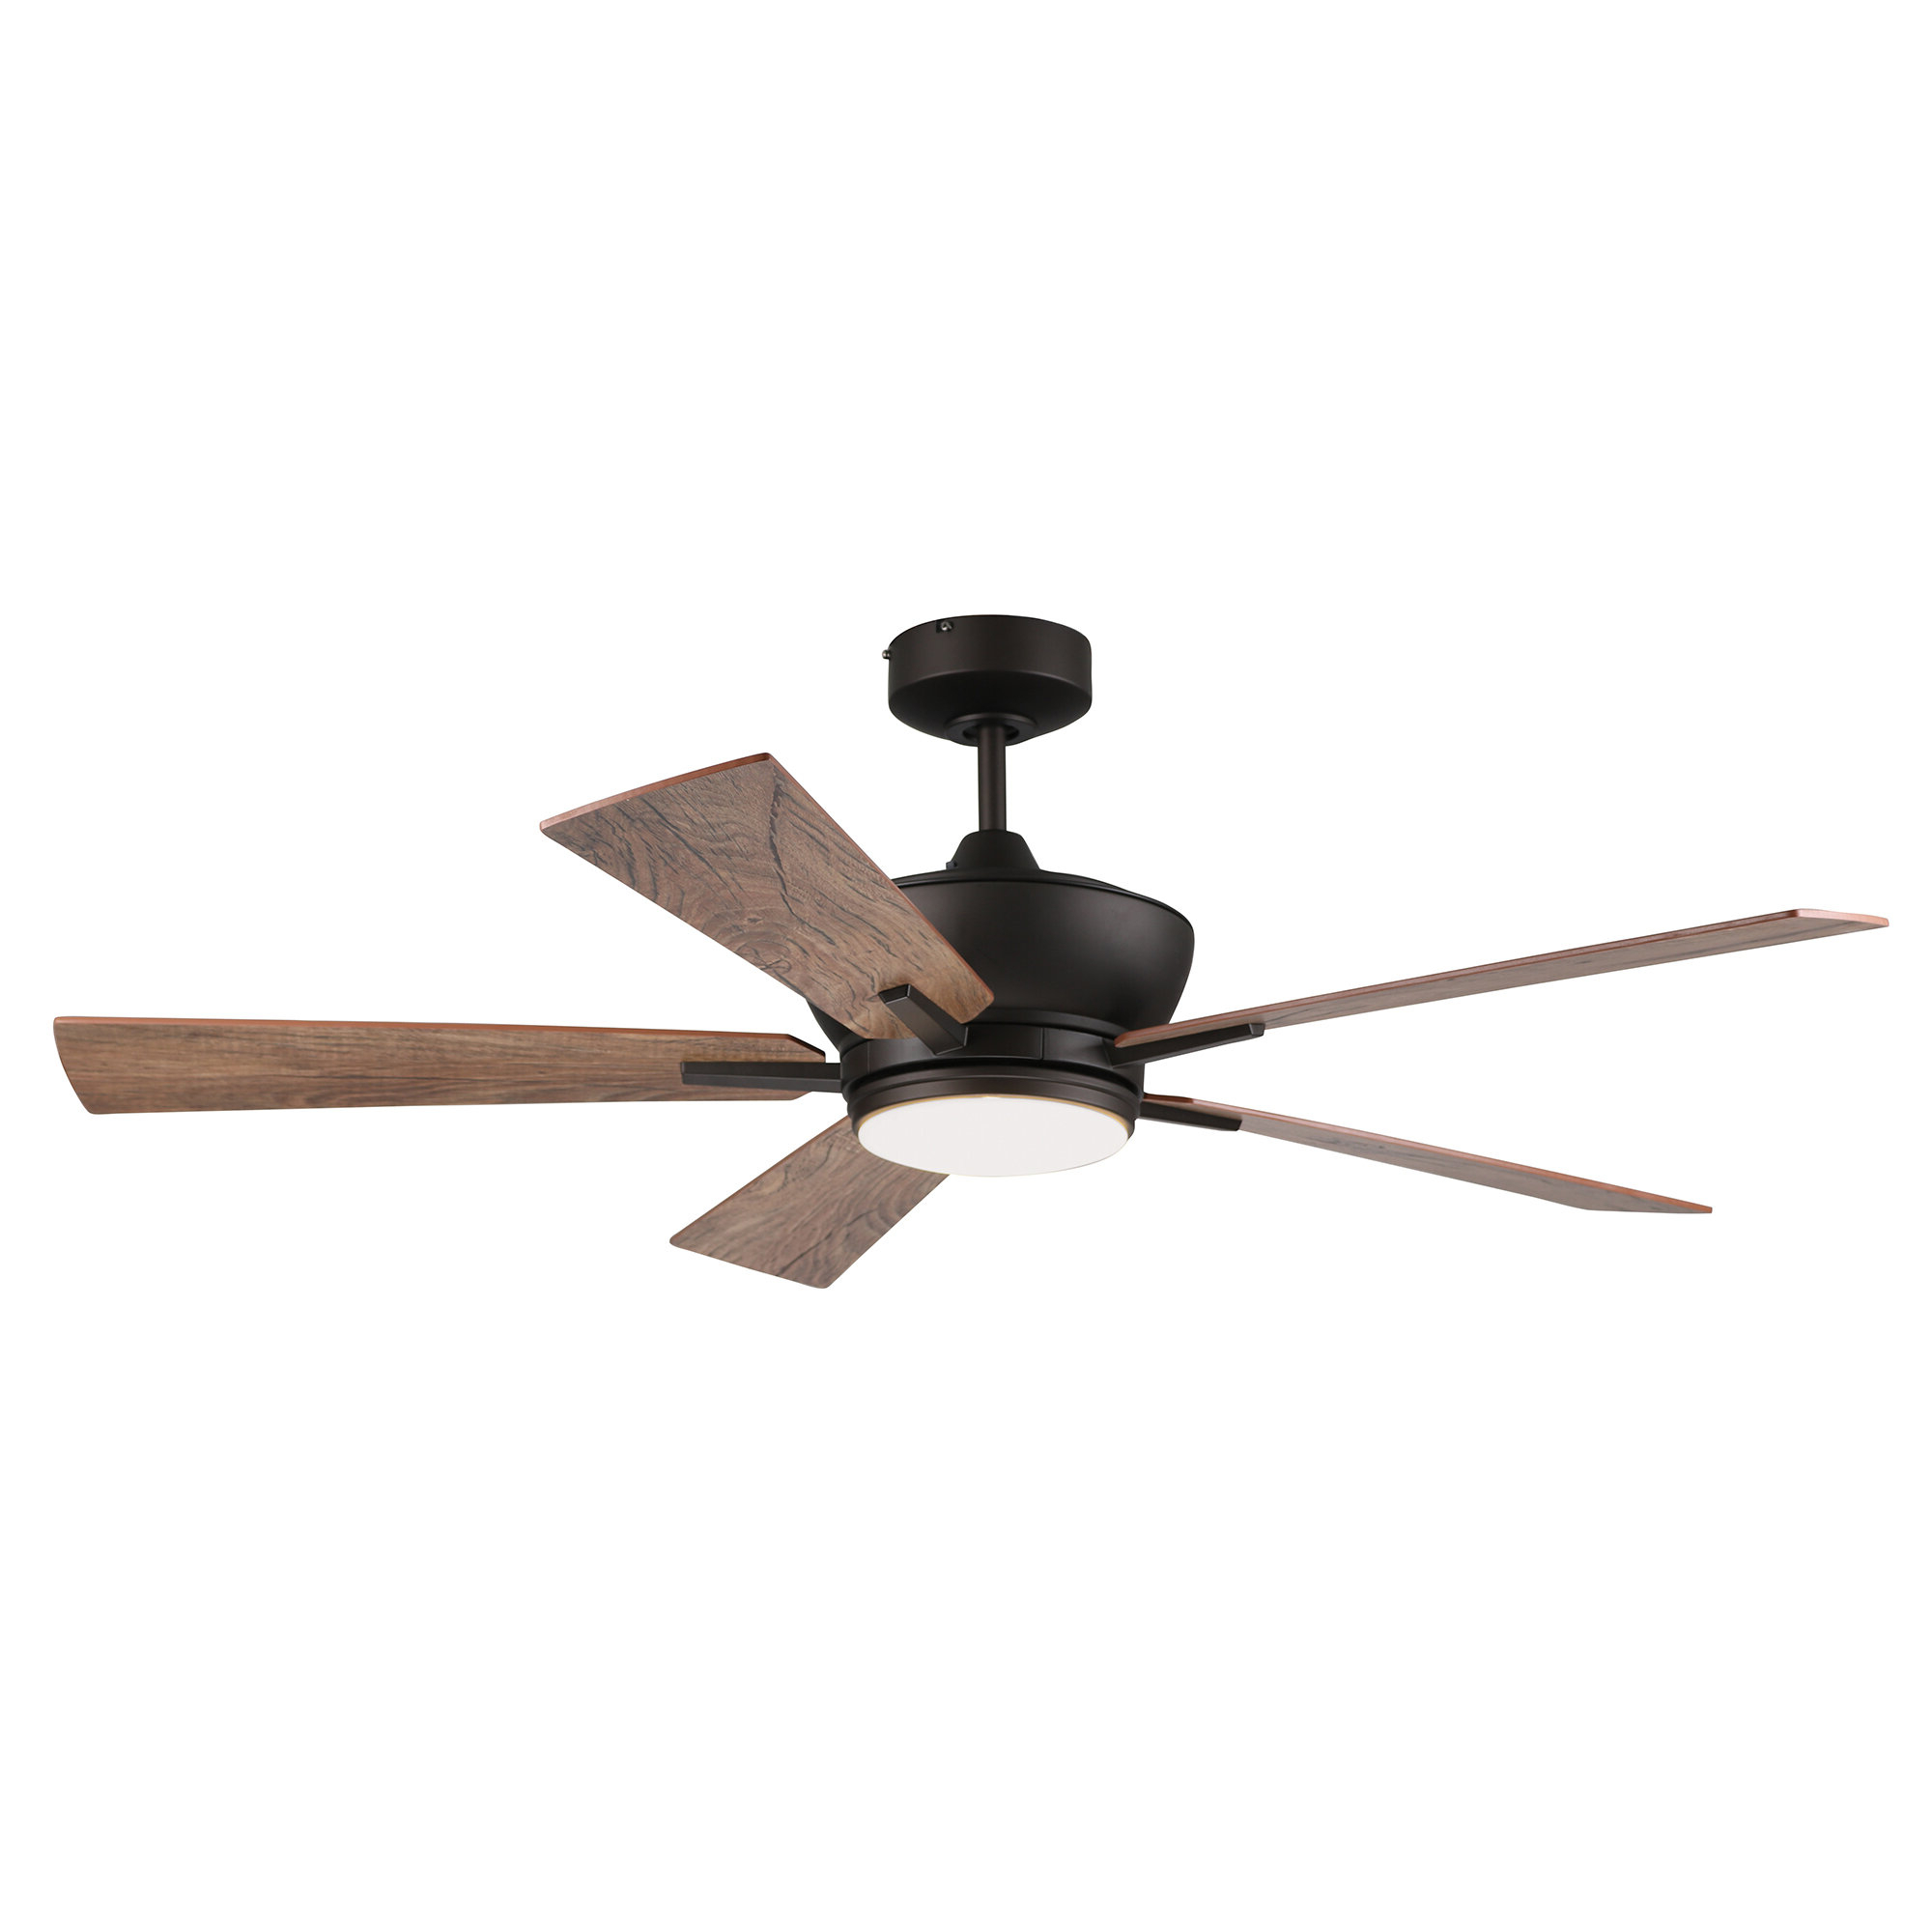 "Cillian 6 Blade Ceiling Fans For Favorite 52"" Georgetown Tri Mount 5 Blade Ceiling Fan With Remote, Light Kit Included (View 4 of 20)"